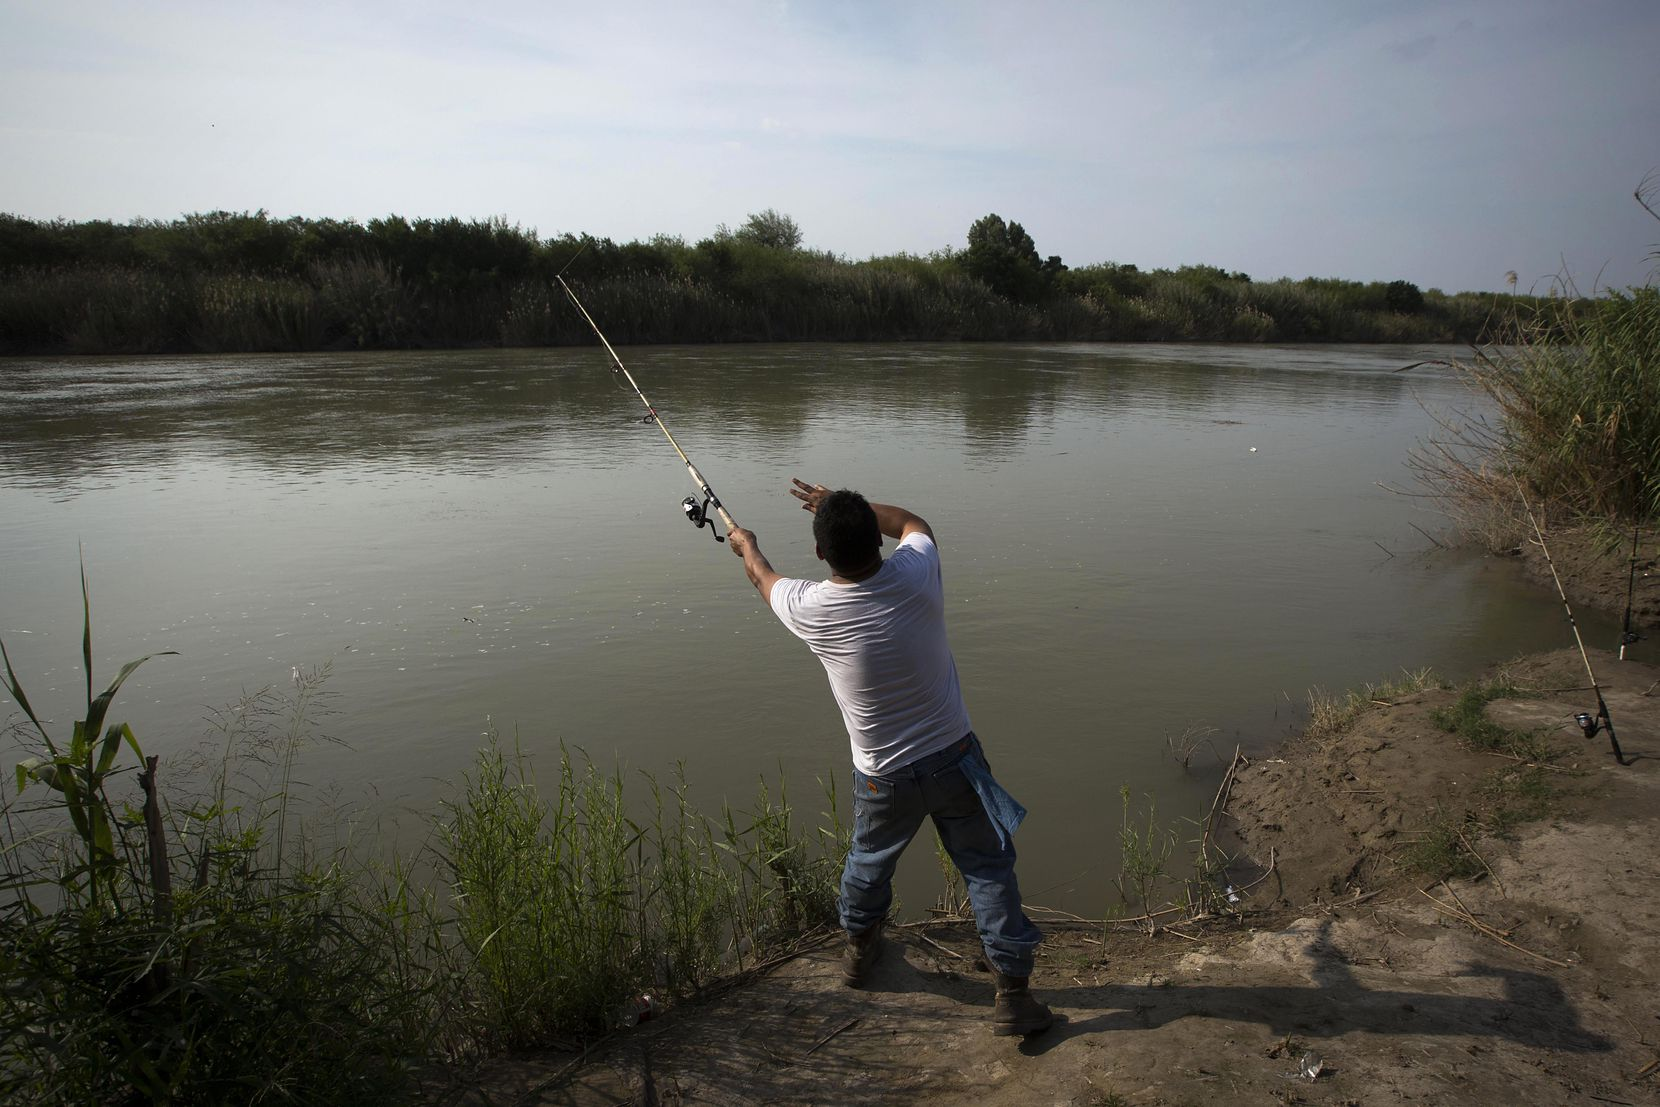 """Leo Ayala of Laredo, Texas, casts a line into the Rio Grande River while fishing on May 10, 2017, in El Cenizo, Texas, a small town with a """"safe haven"""" ordinance."""